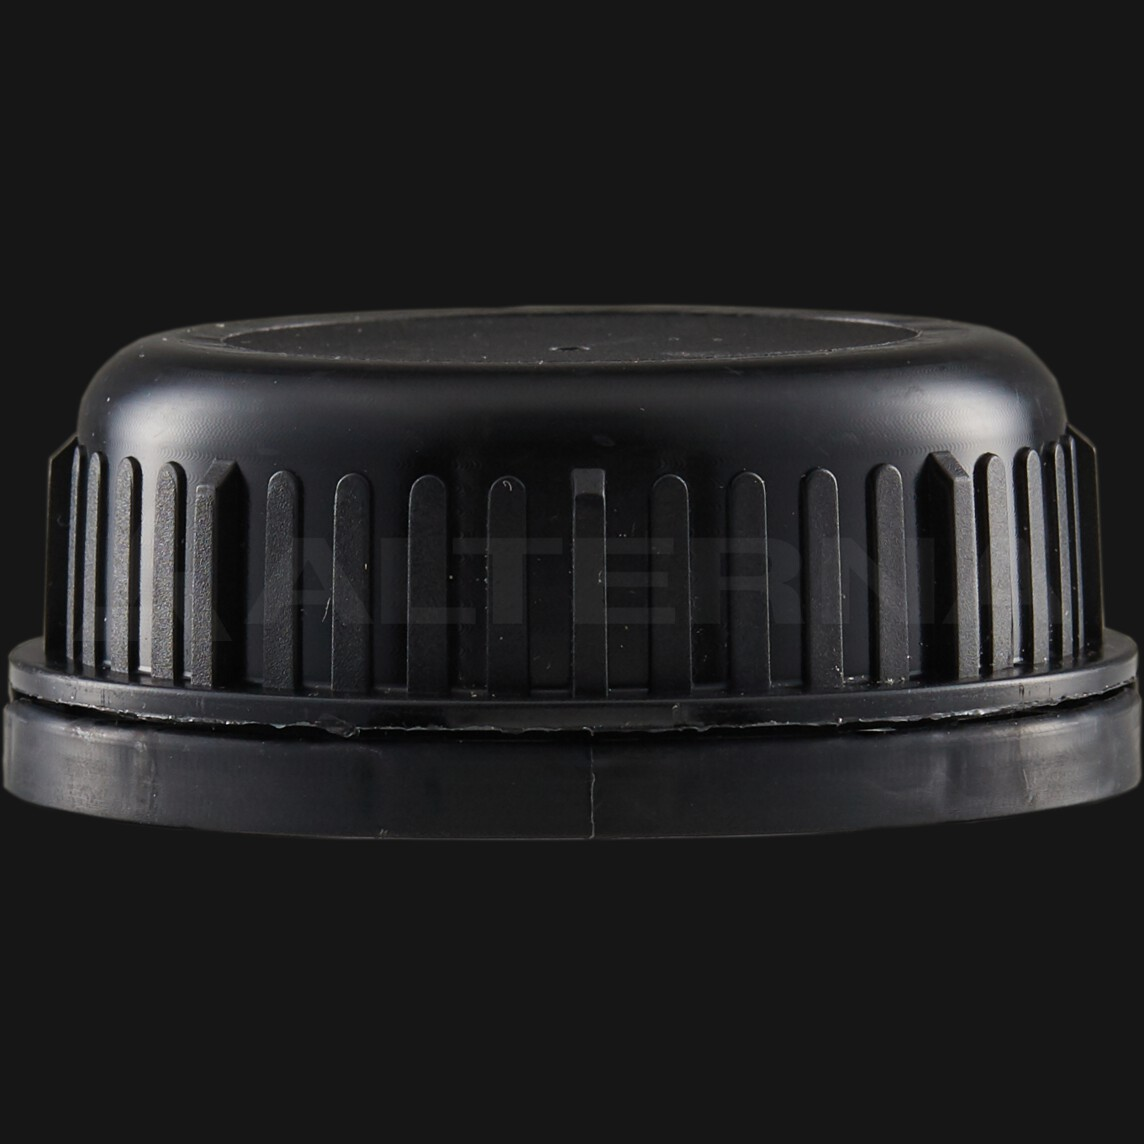 63 mm Foam Seal Vented Secure Cap